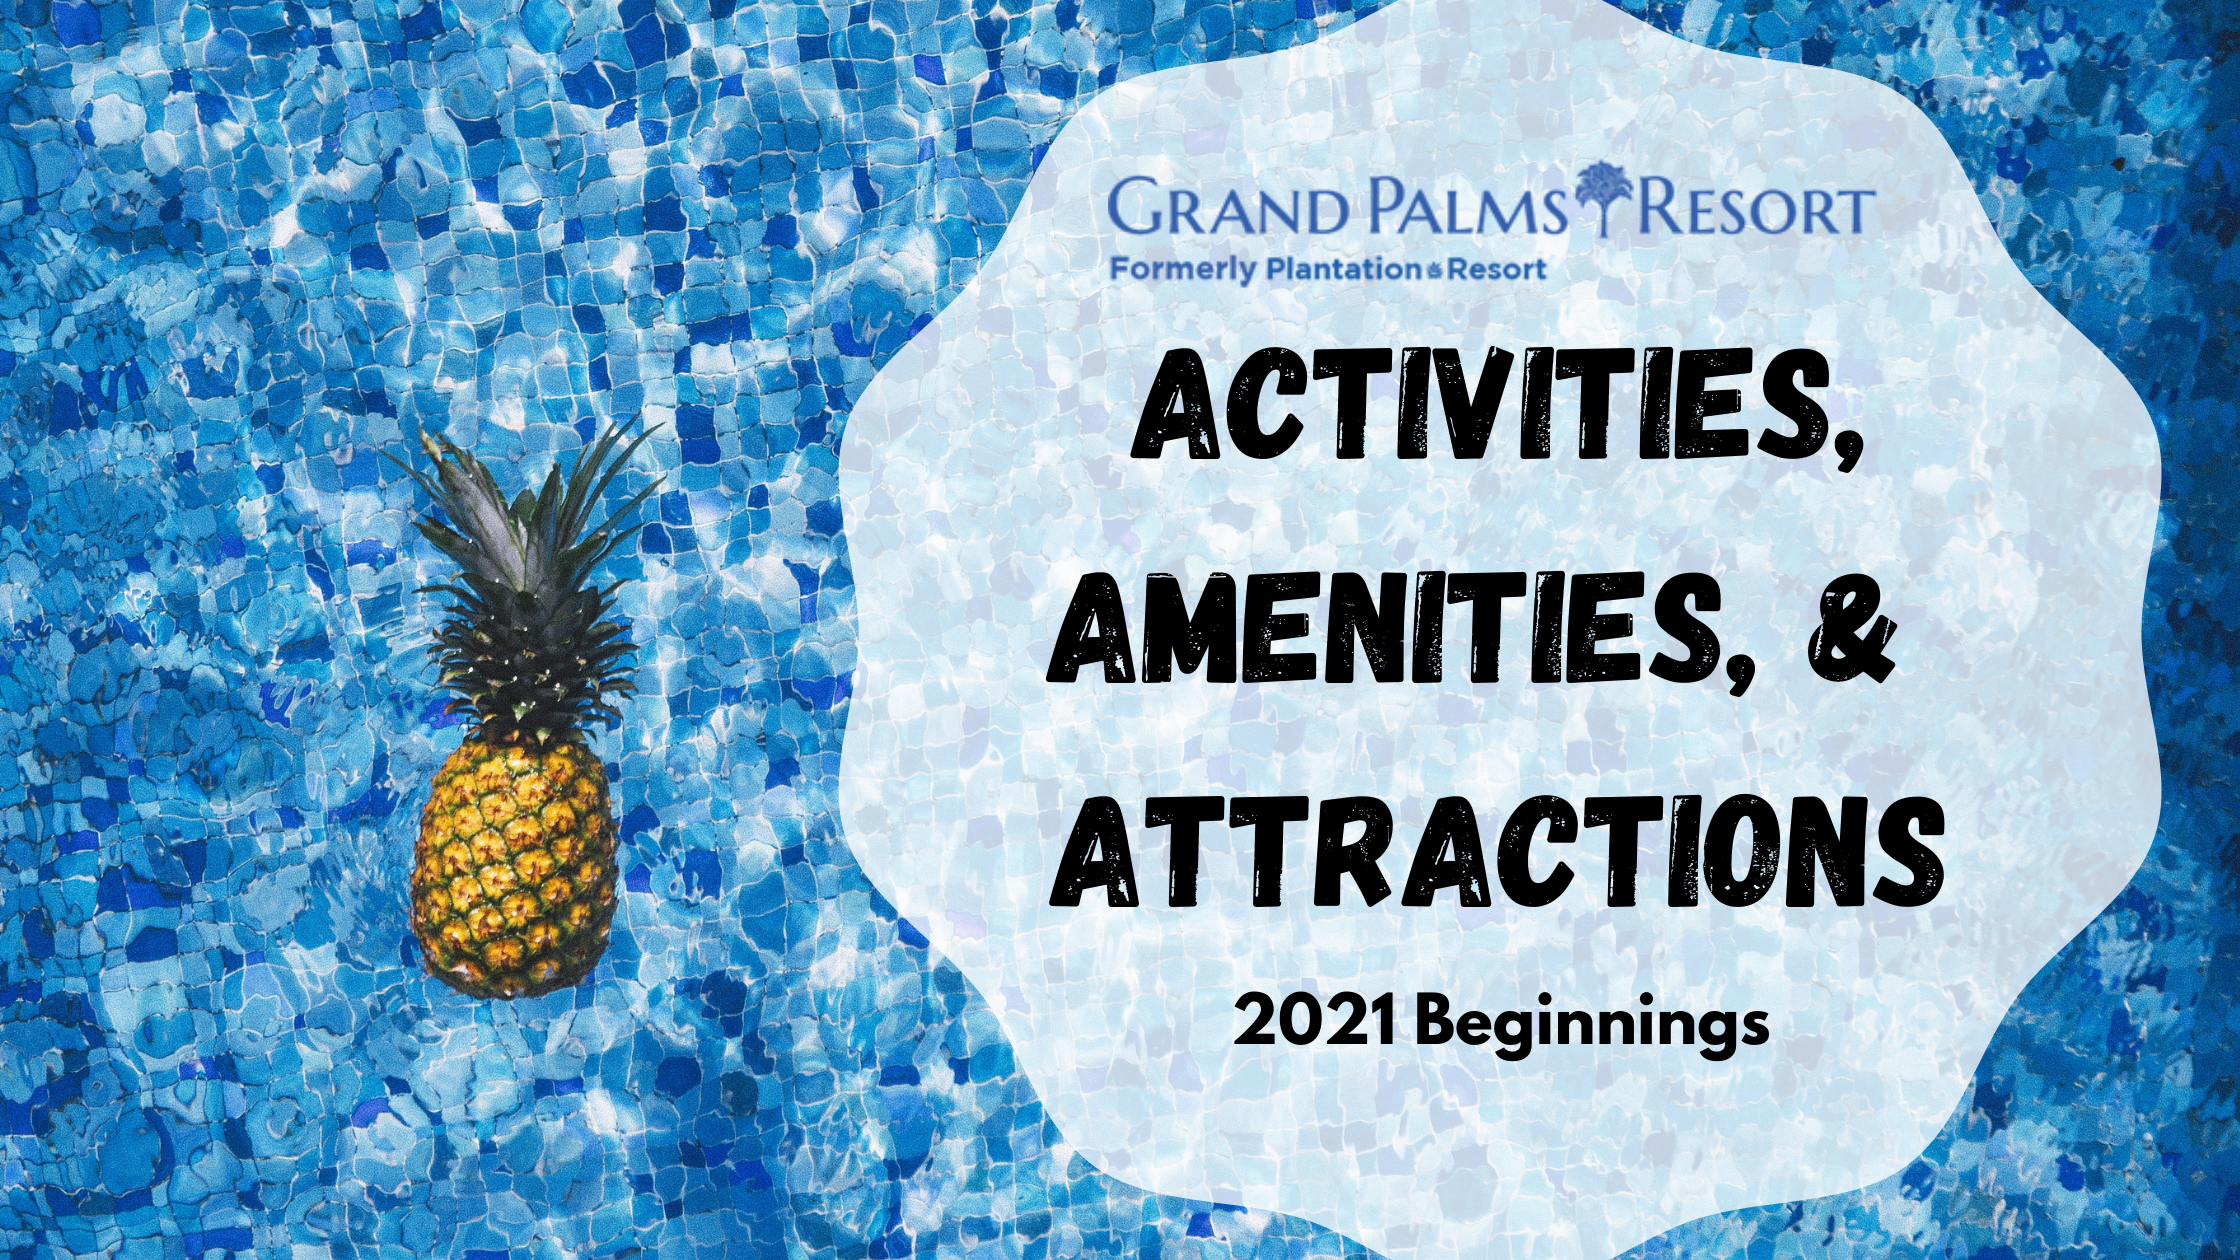 Enjoy activities, amenities, and attractions during your Myrtle Beach vacation at Grand Palms Resort formerly Plantation Resort.